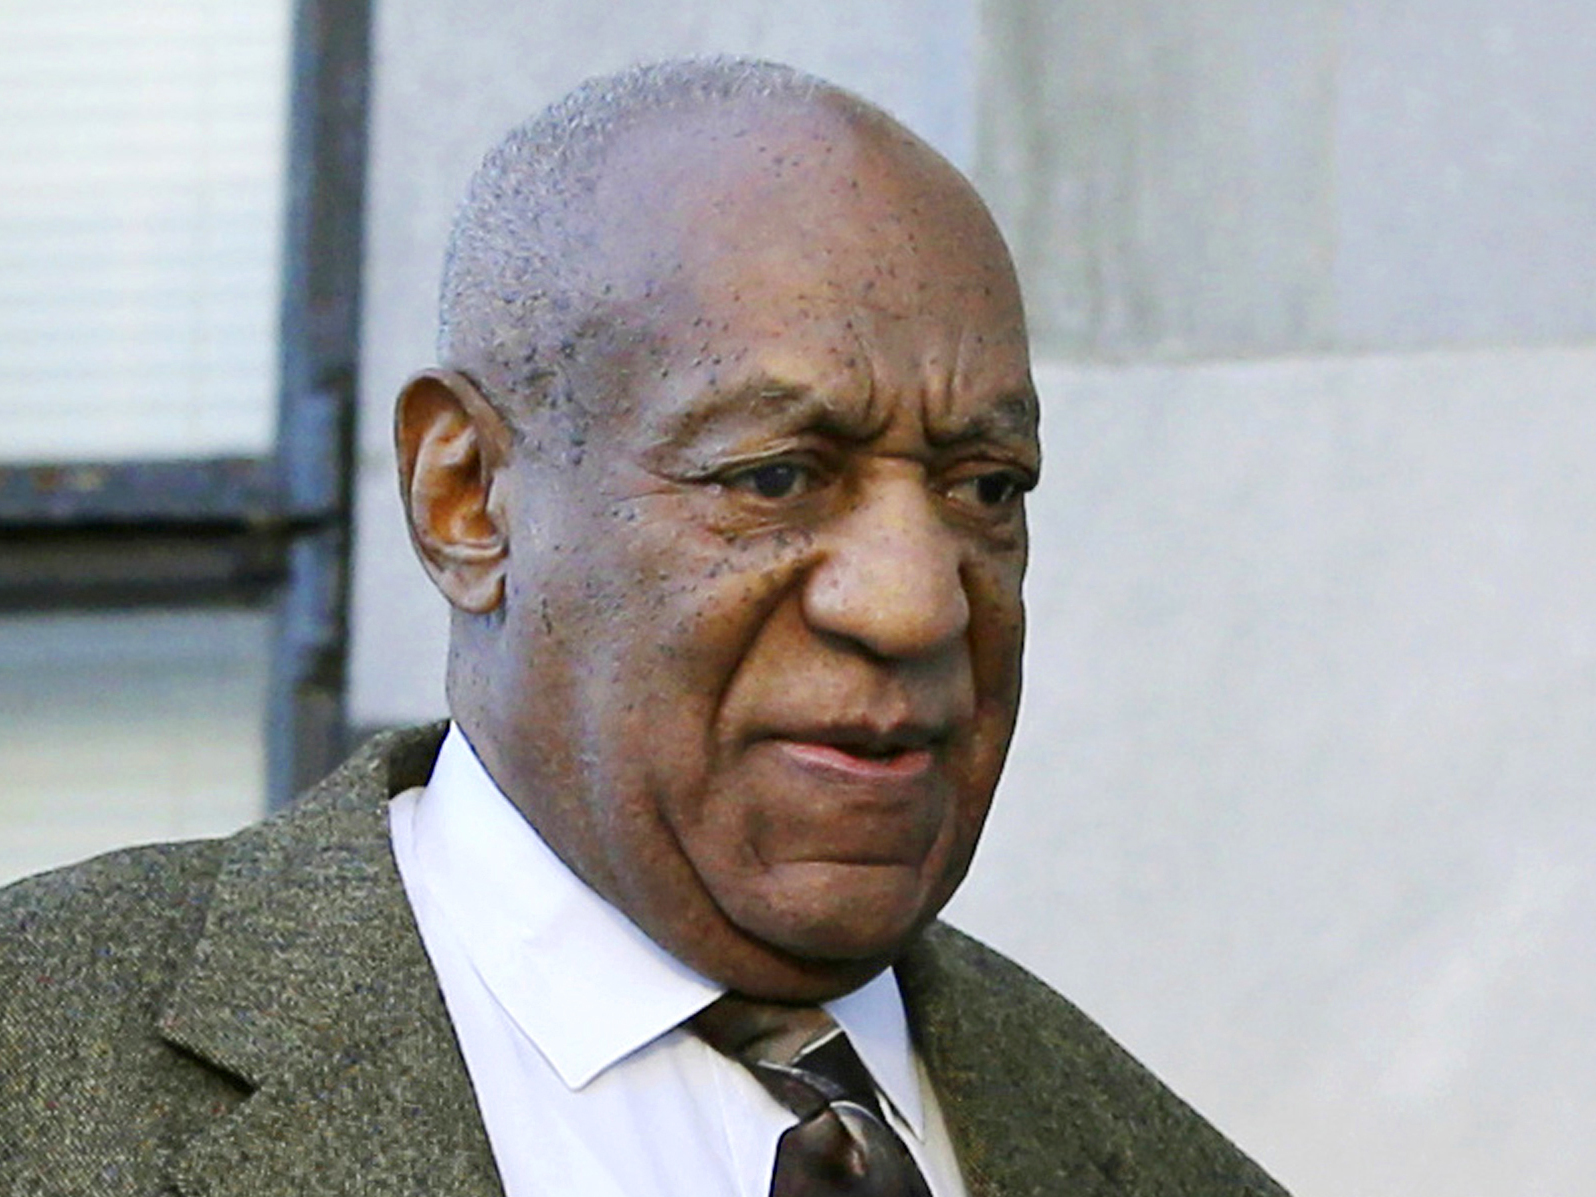 Comedian Bill Cosby outside a Norristown, Pa., courtroom in February. An appeals court has rejected Cosby's effort to reseal his deposition testimony about extramarital affairs, prescription sedatives and payments to women. (Mel Evans, Associated Press)